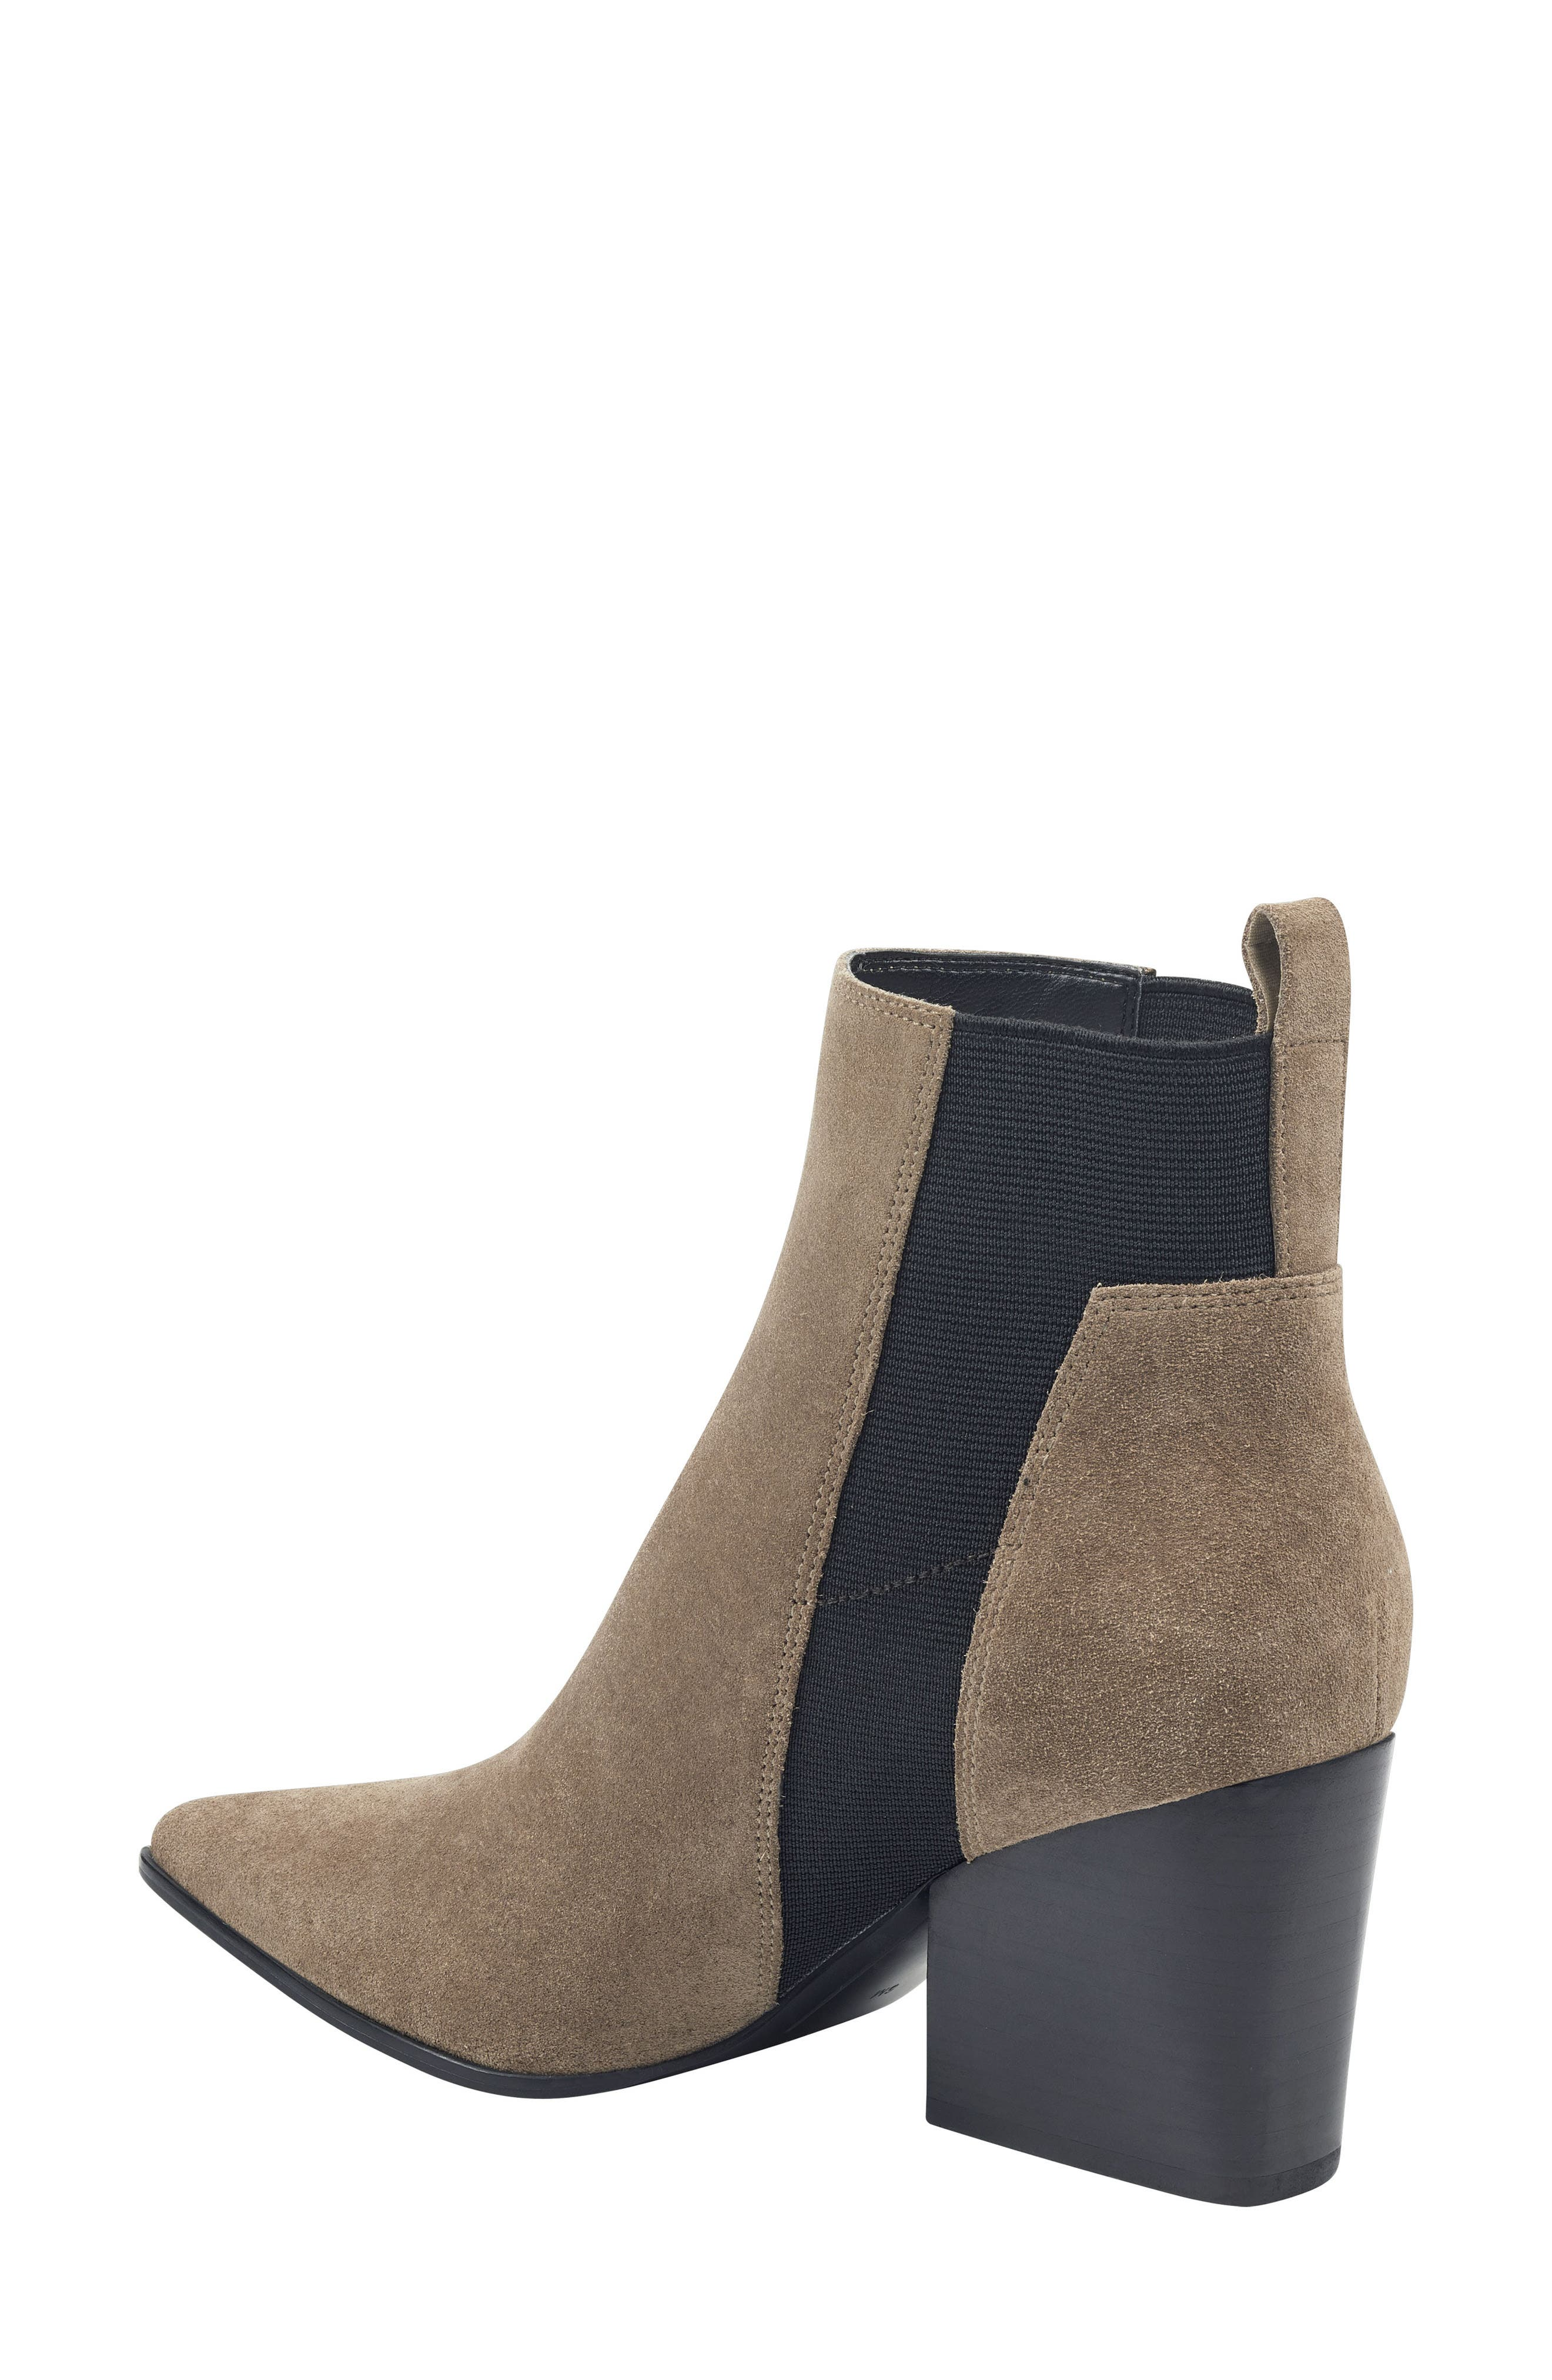 Pointy Toe Chelsea Bootie,                             Alternate thumbnail 2, color,                             TAUPE